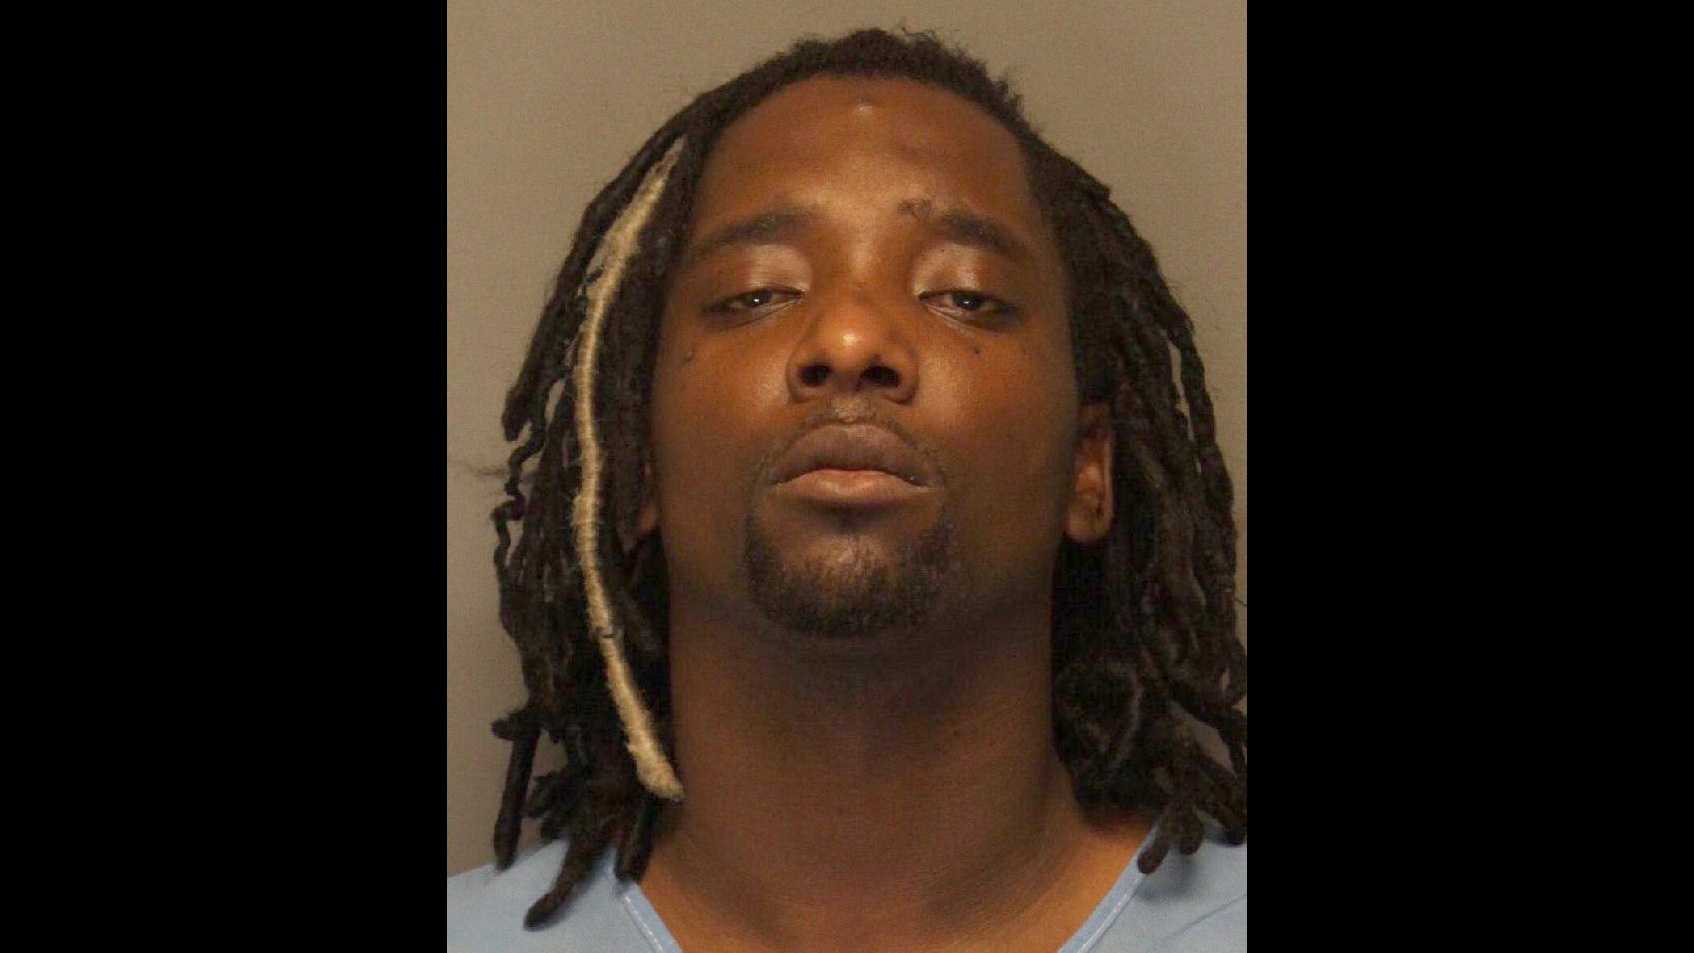 Steven Hendrix, 32, was arrested Wednesday, Feb. 24, 2016, in connection to a deadly crash in Davis, the Davis Police Department said.